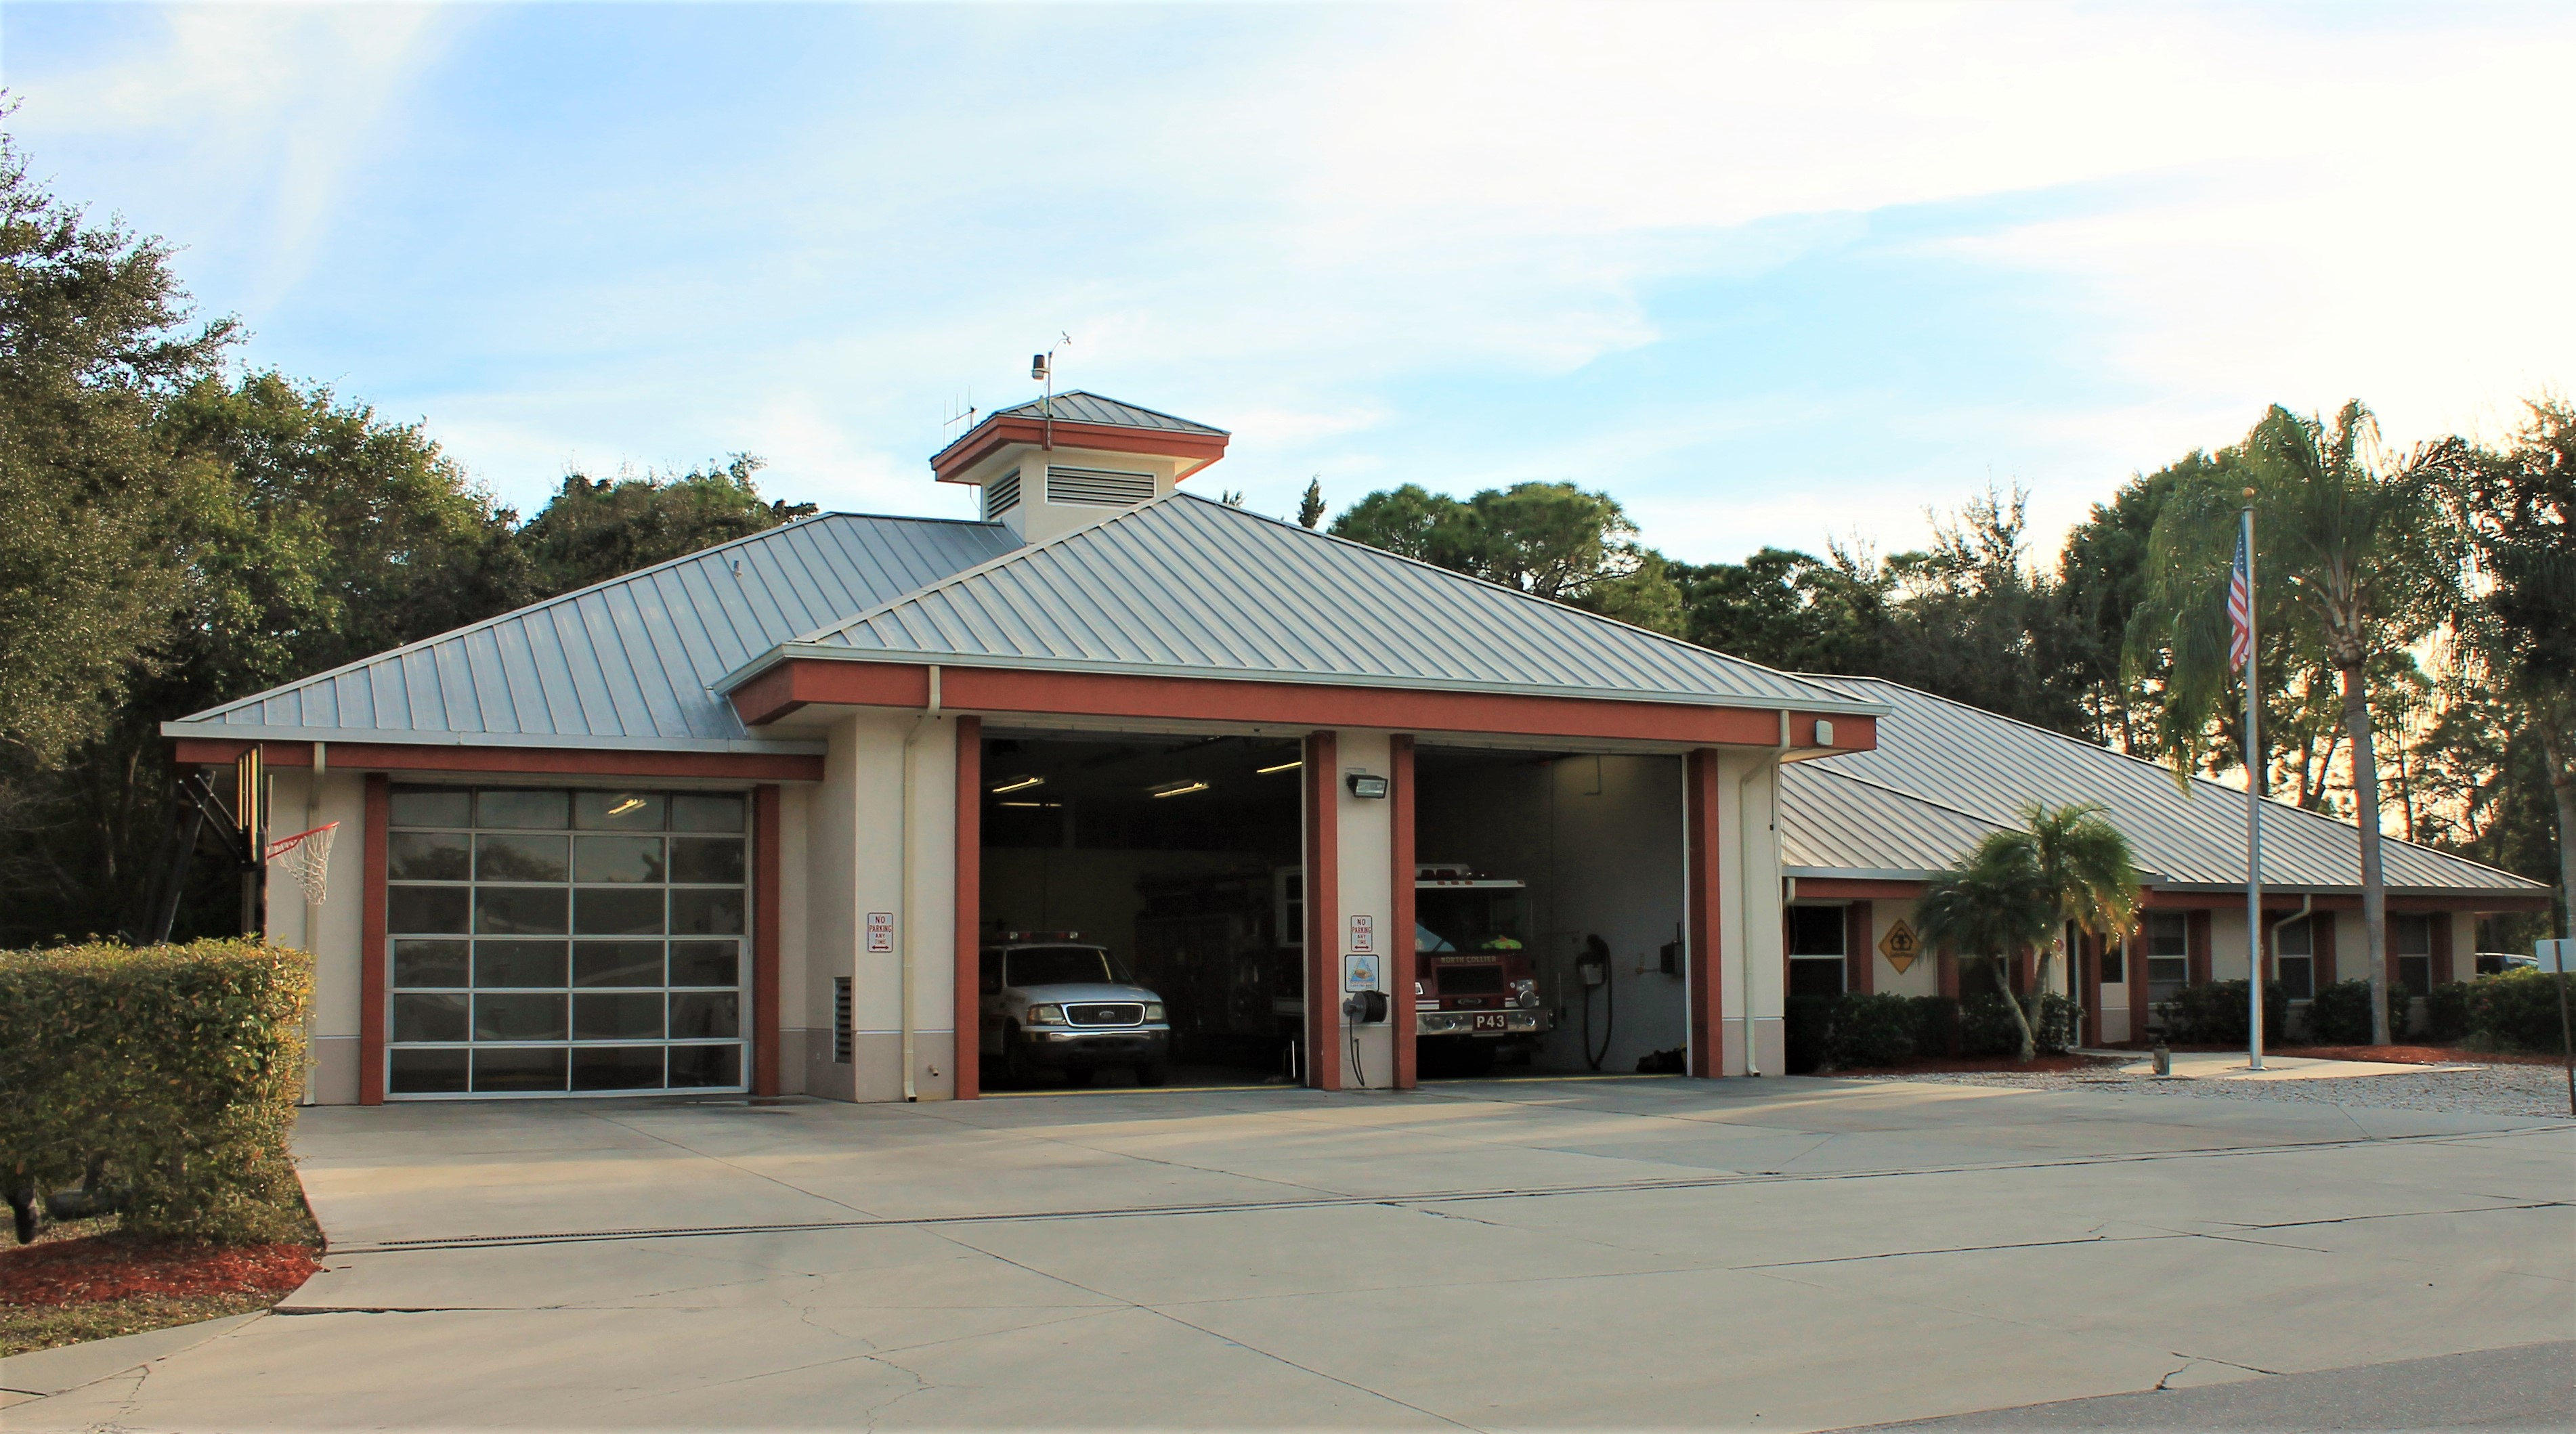 North Collier Fire & Rescue Station 43